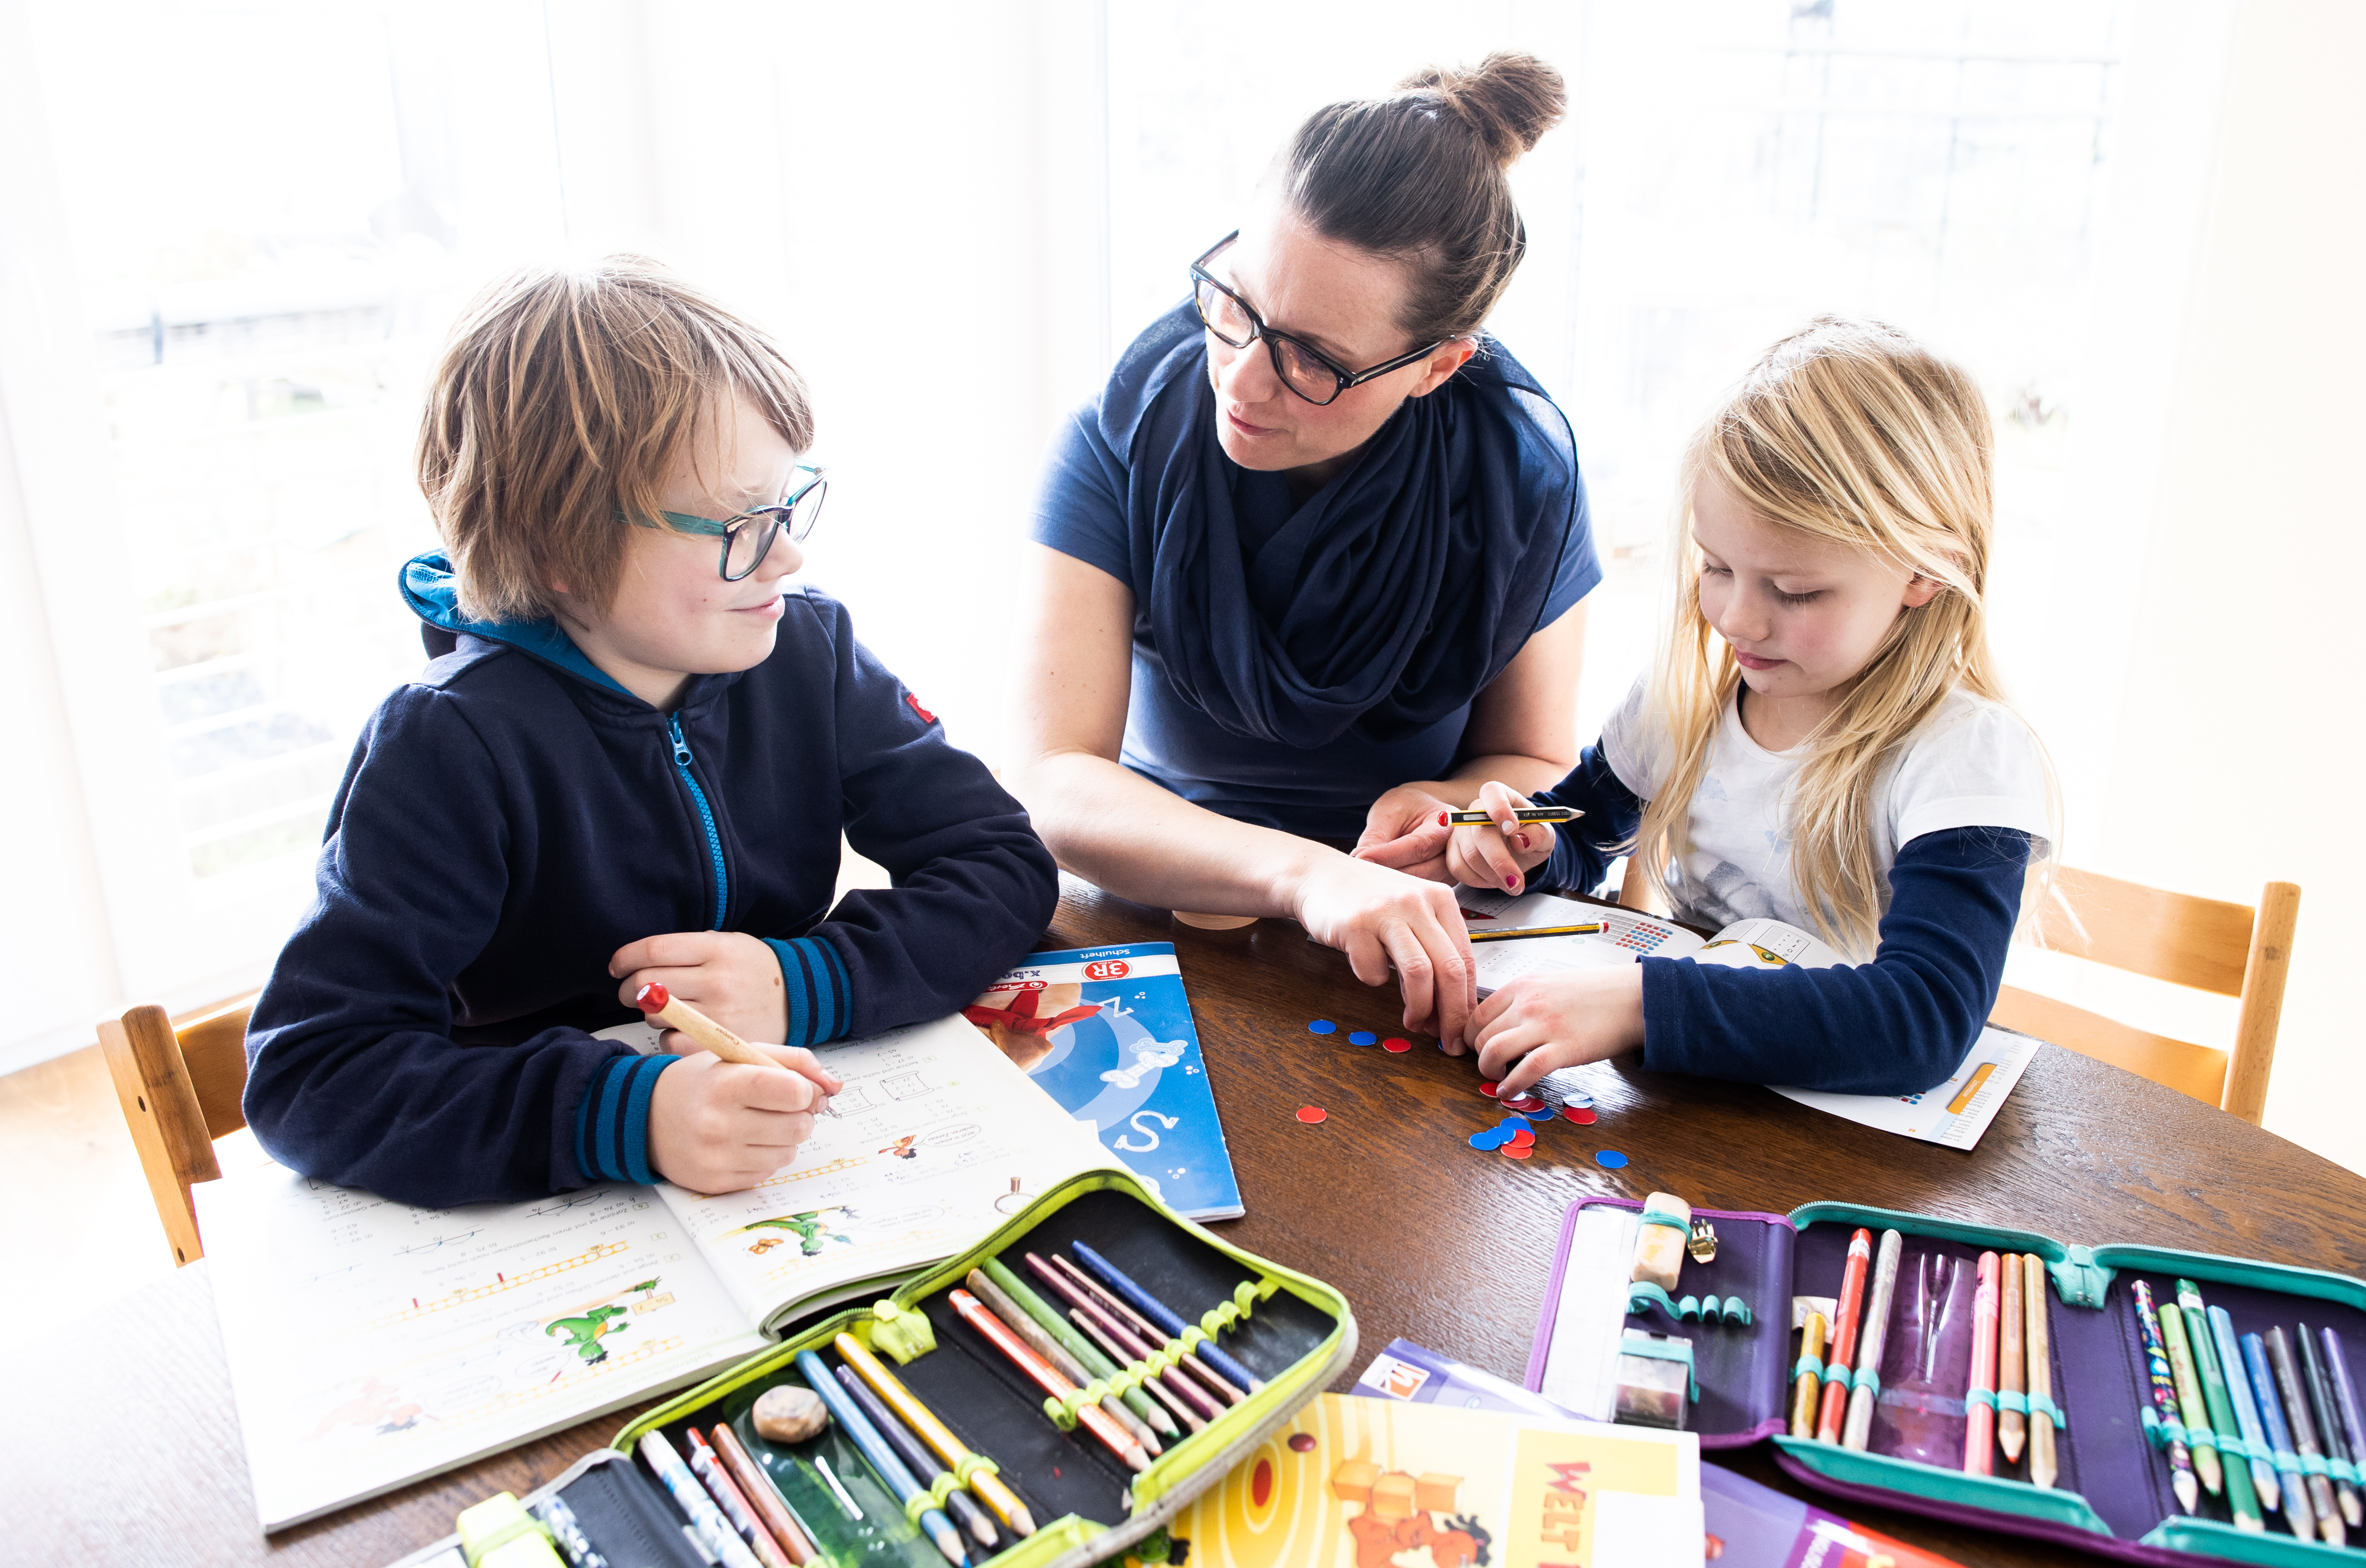 DINSLAKEN, GERMANY - MARCH 15: A mother helps her nine-year-old son and six-year-old daughter to do school homework on March 15, 2020 in Dinslaken, Germany. (Photo by Lars Baron/Getty Images)